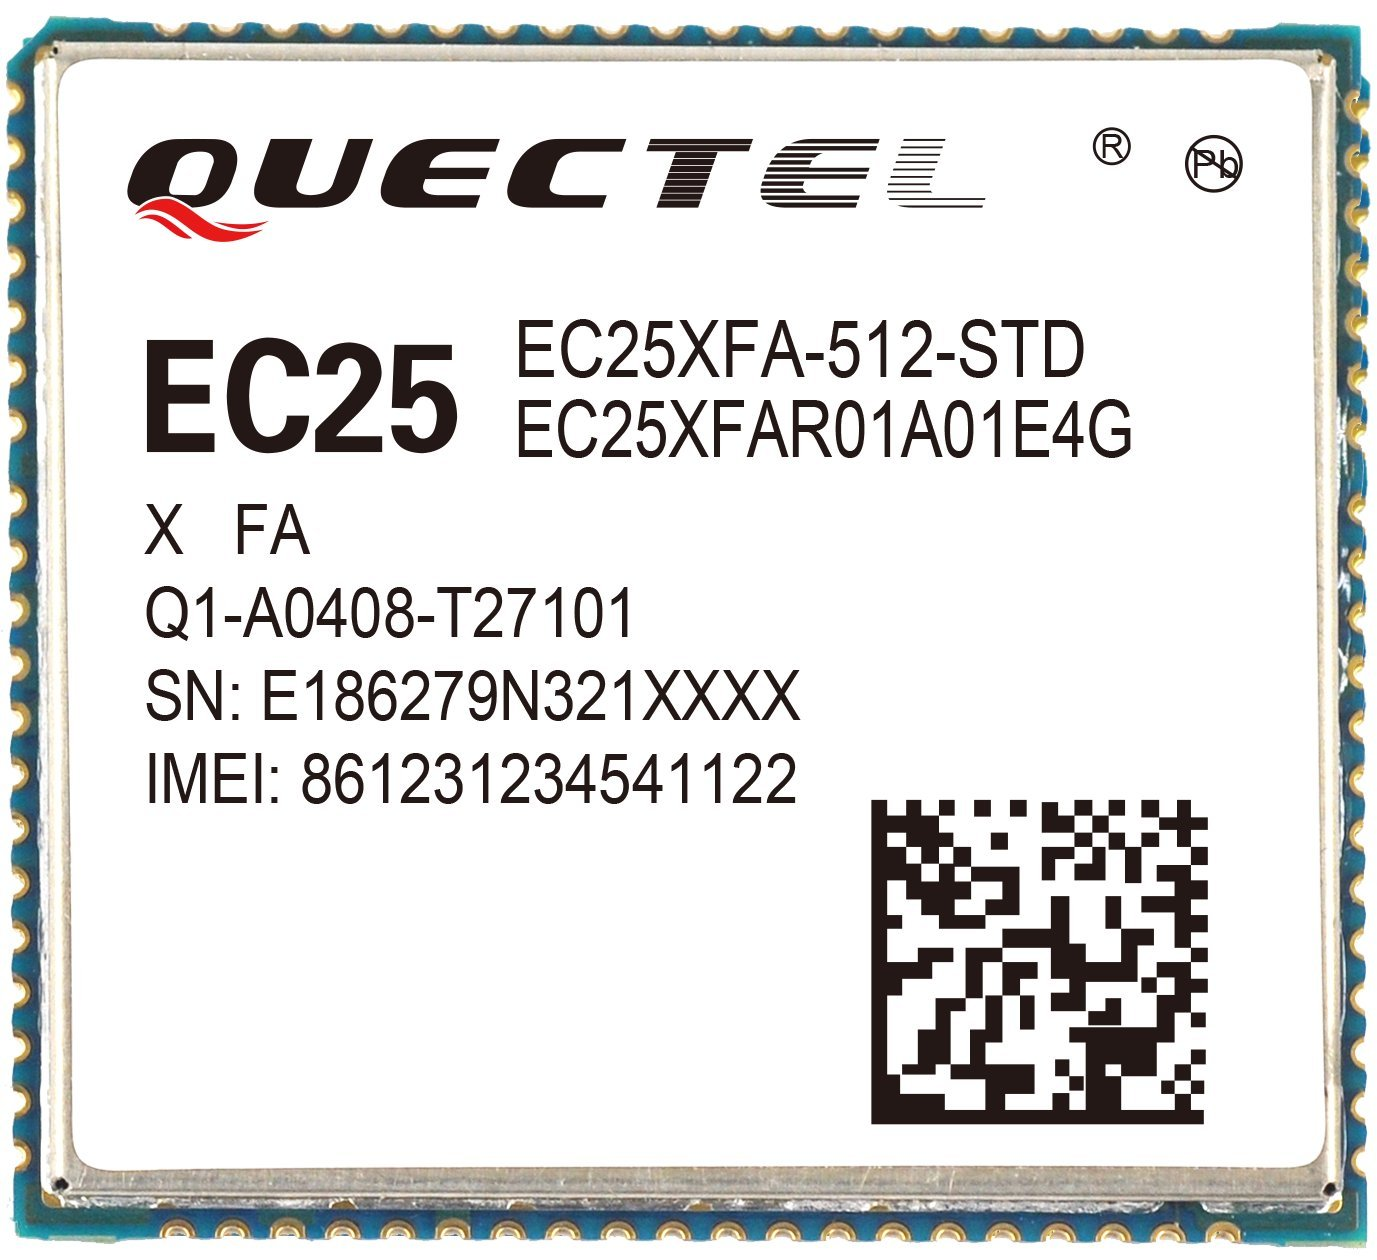 Quectel EC25 IoT/M2M-optimized Cat 4 LTE Module